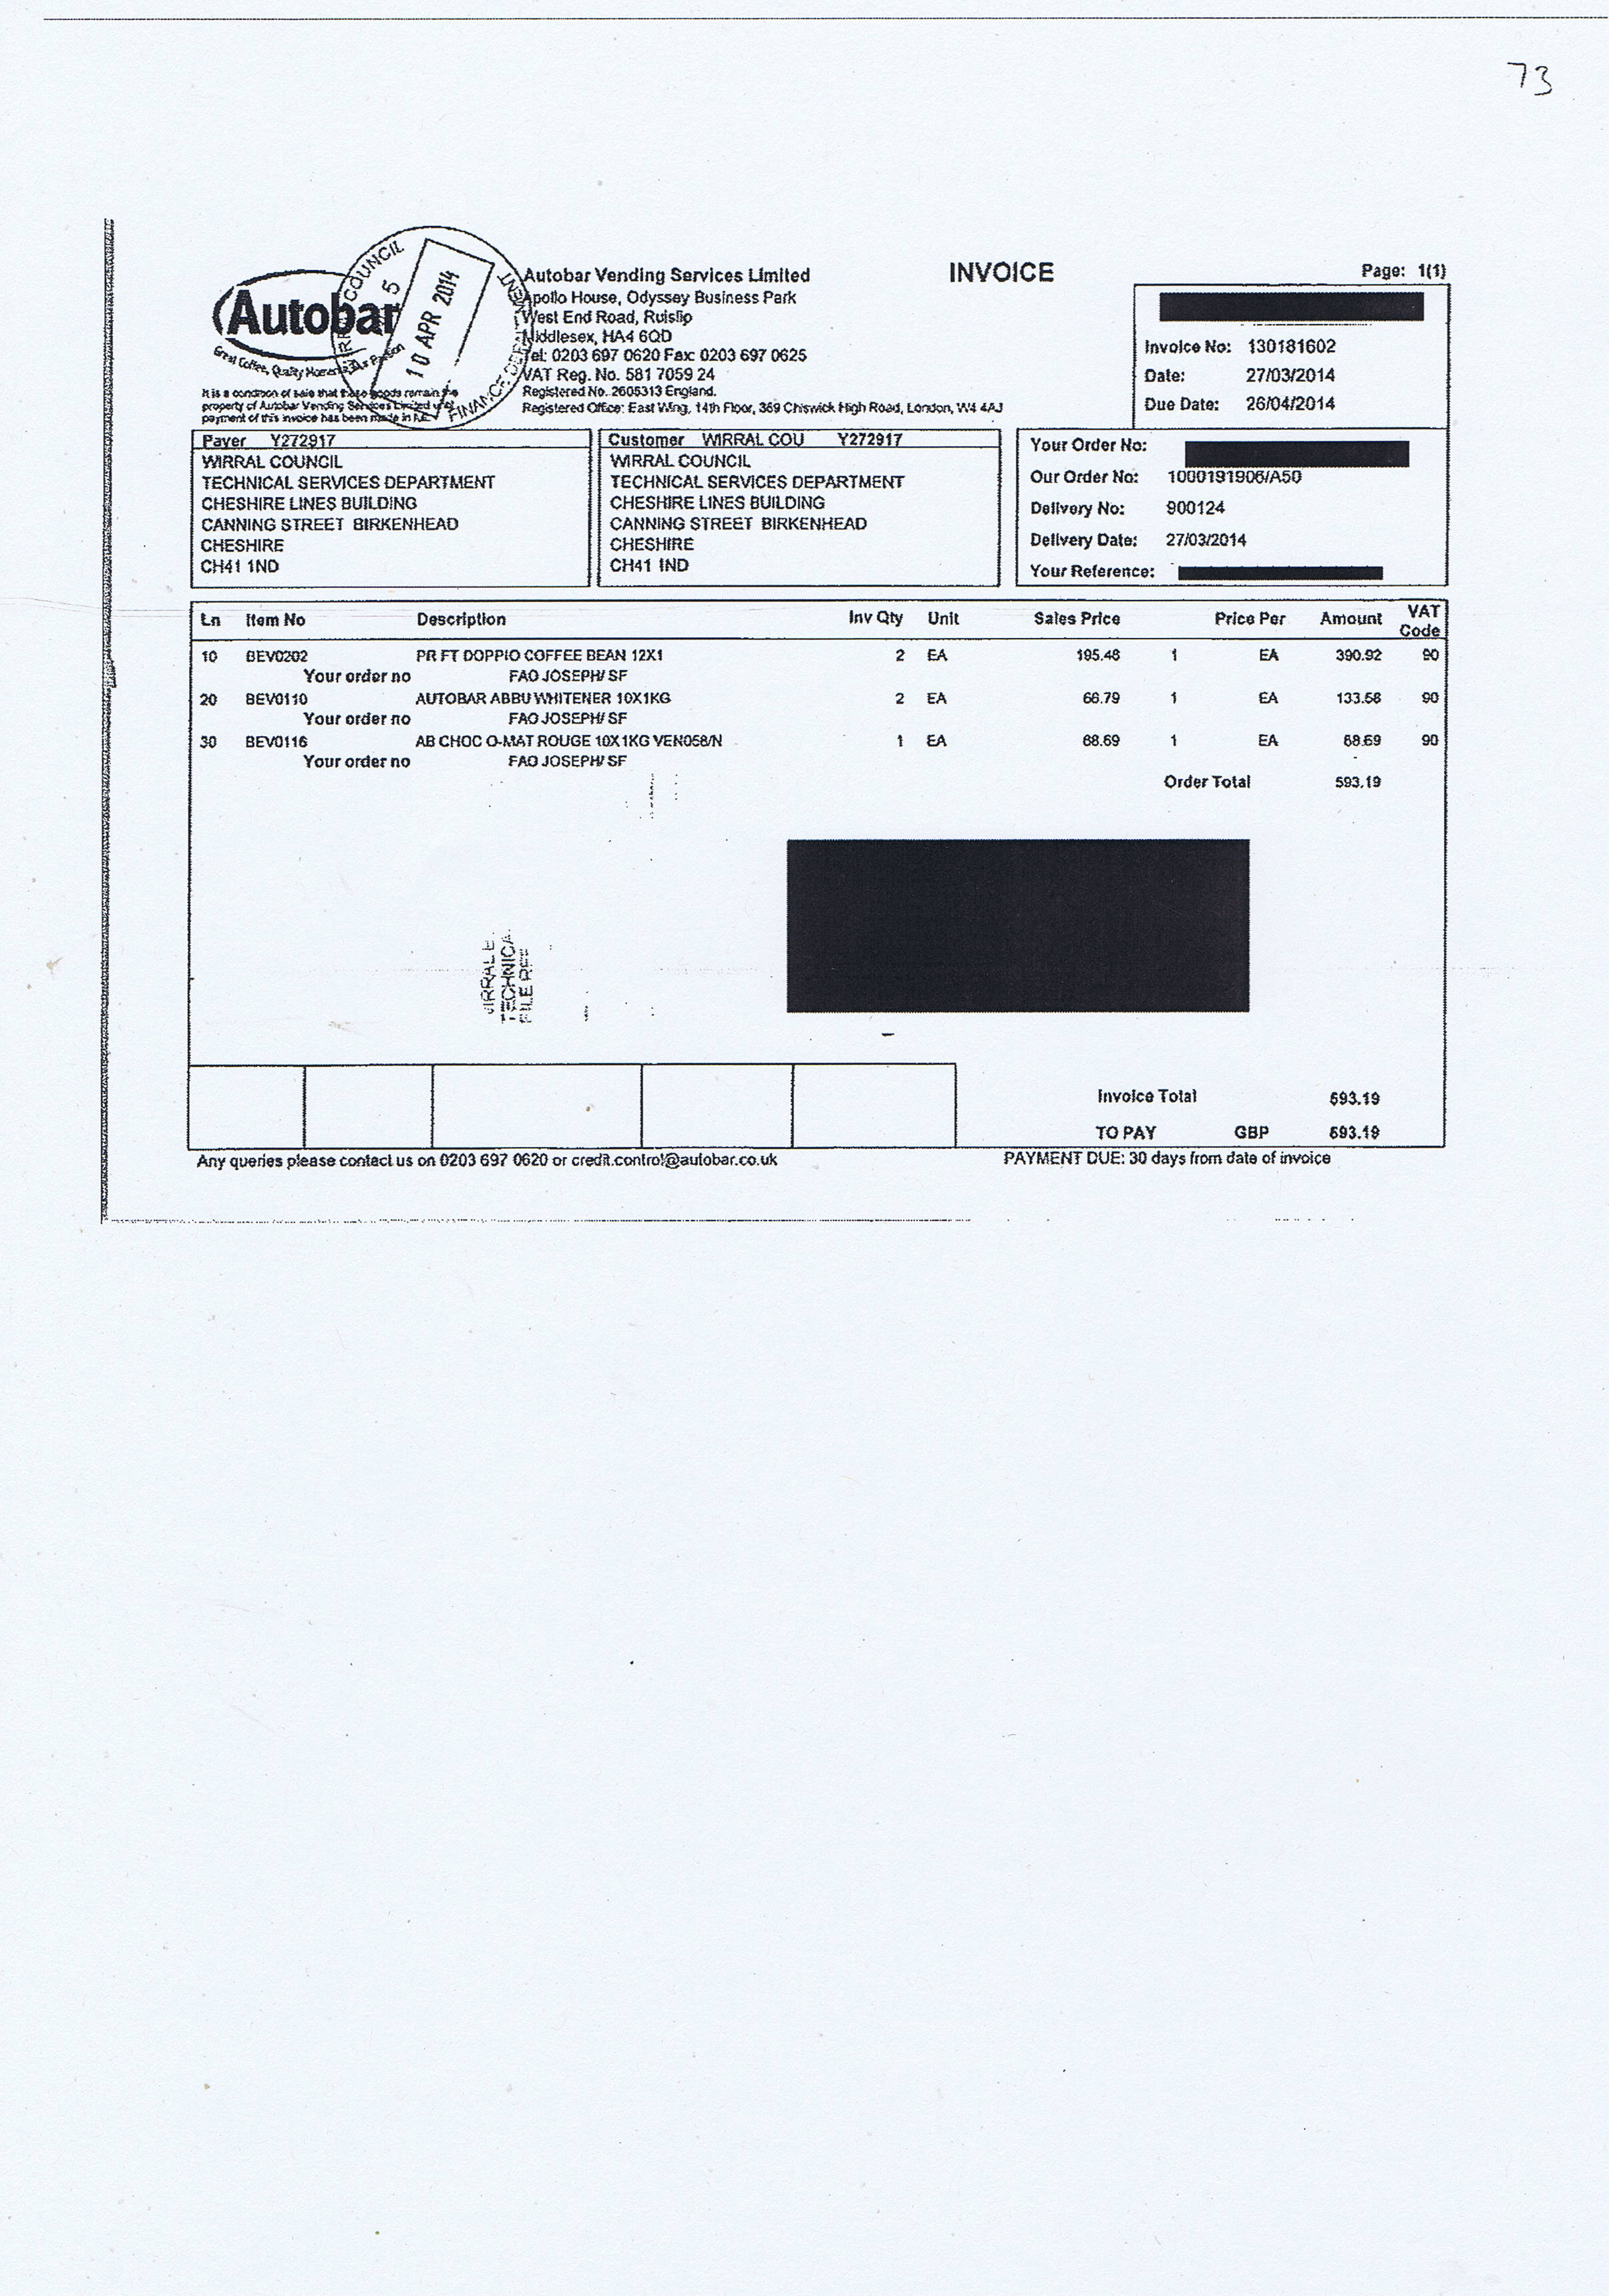 Wirral Council invoice 73 Autobar Vending Services Limited £593.19